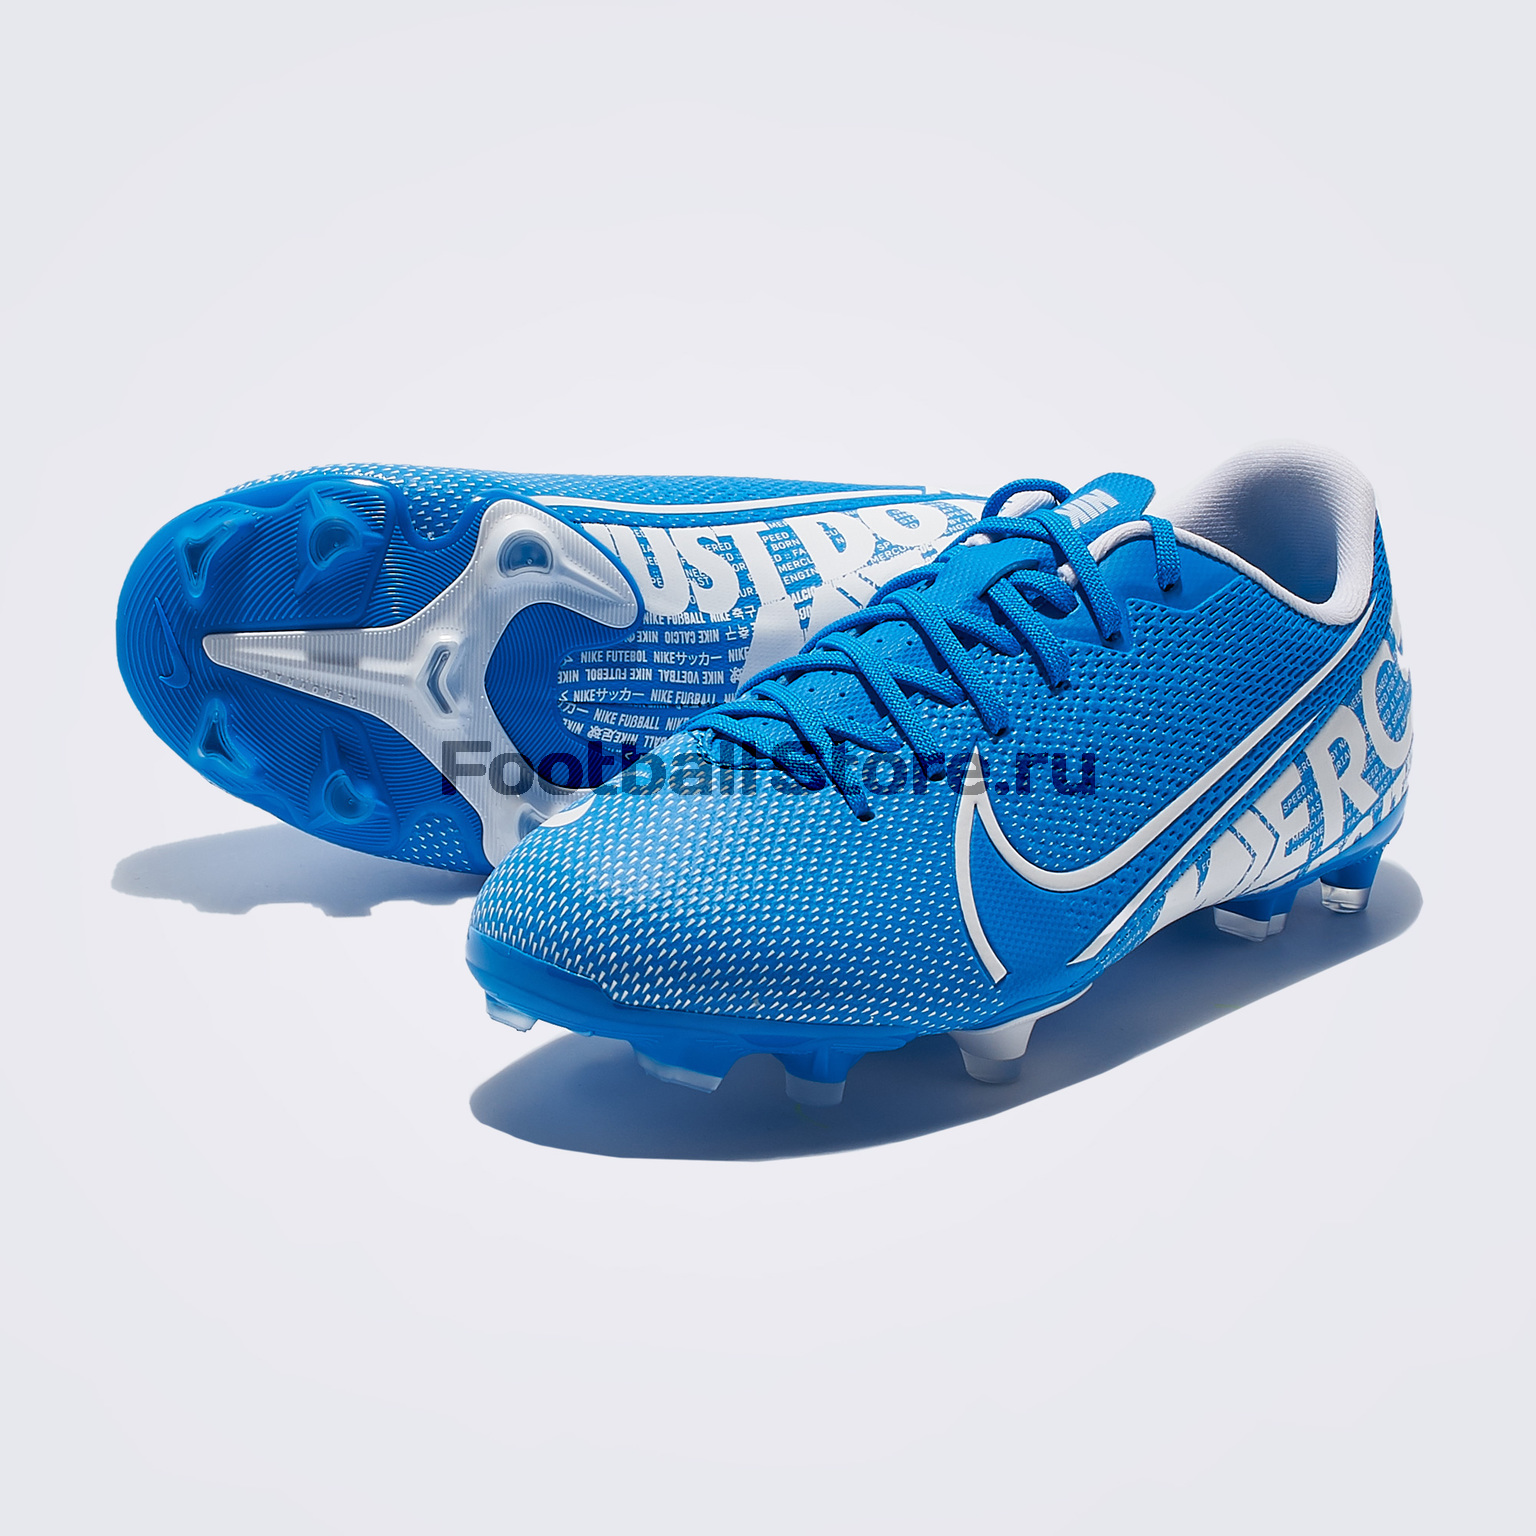 Бутсы детские Nike Vapor 13 Academy FG/MG AT8123-414 цена